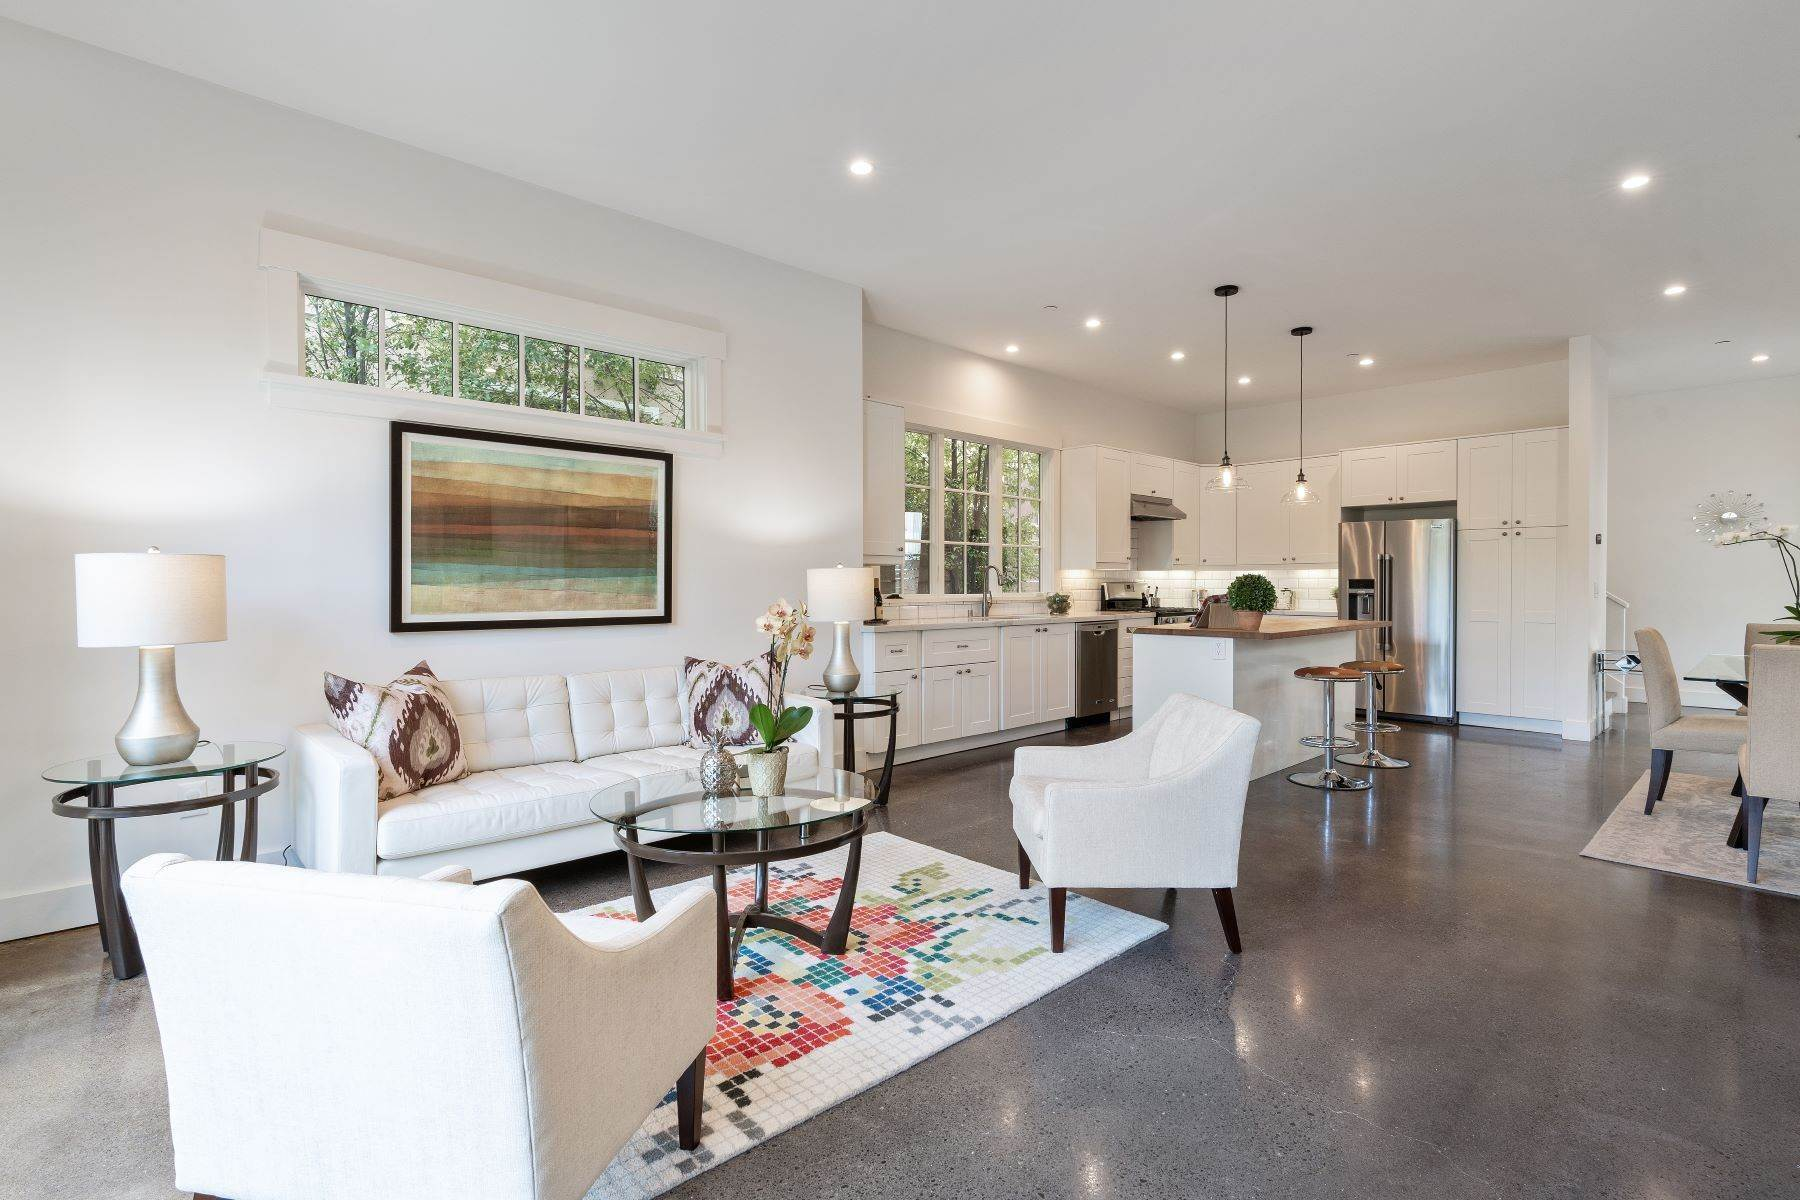 9. Single Family Homes for Sale at Modern Meets Comfort 888 59th Street Oakland, California 94608 United States